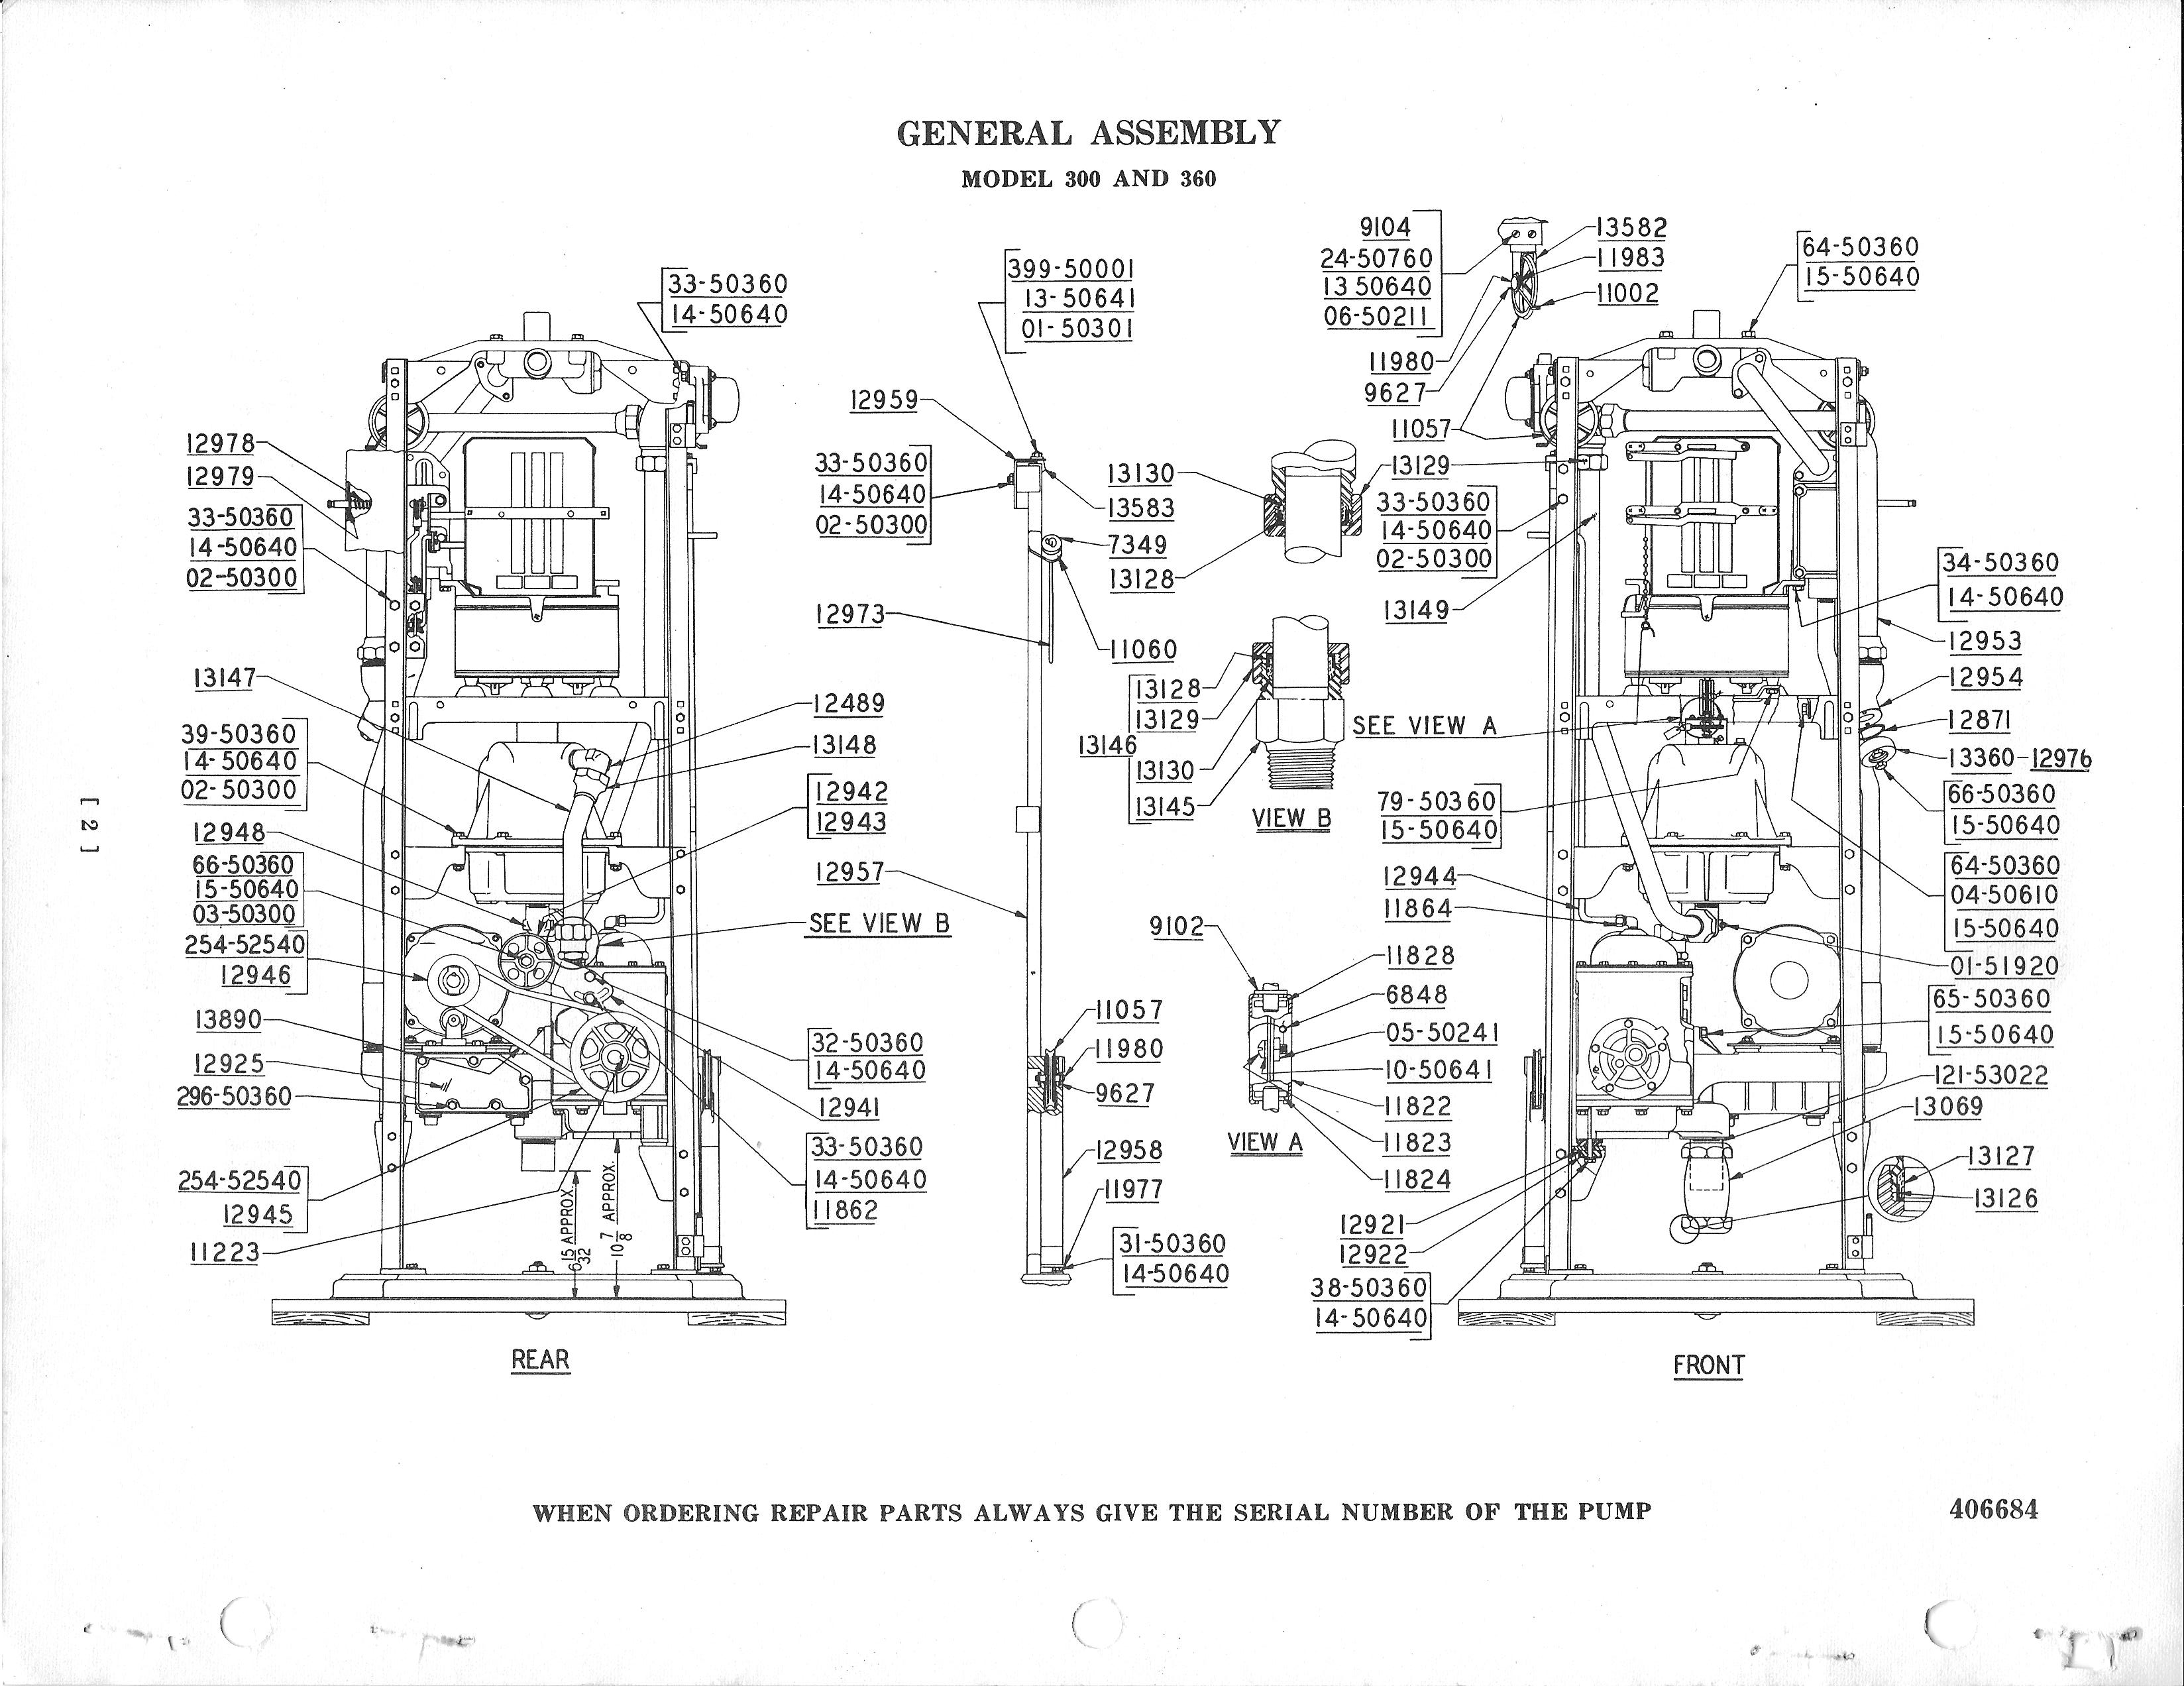 Tokheim Wiring Diagram Excellent Electrical House Older Residential 300 305 Gas Pump Parts Gaspumps Us Old Rh Diagrams 262a